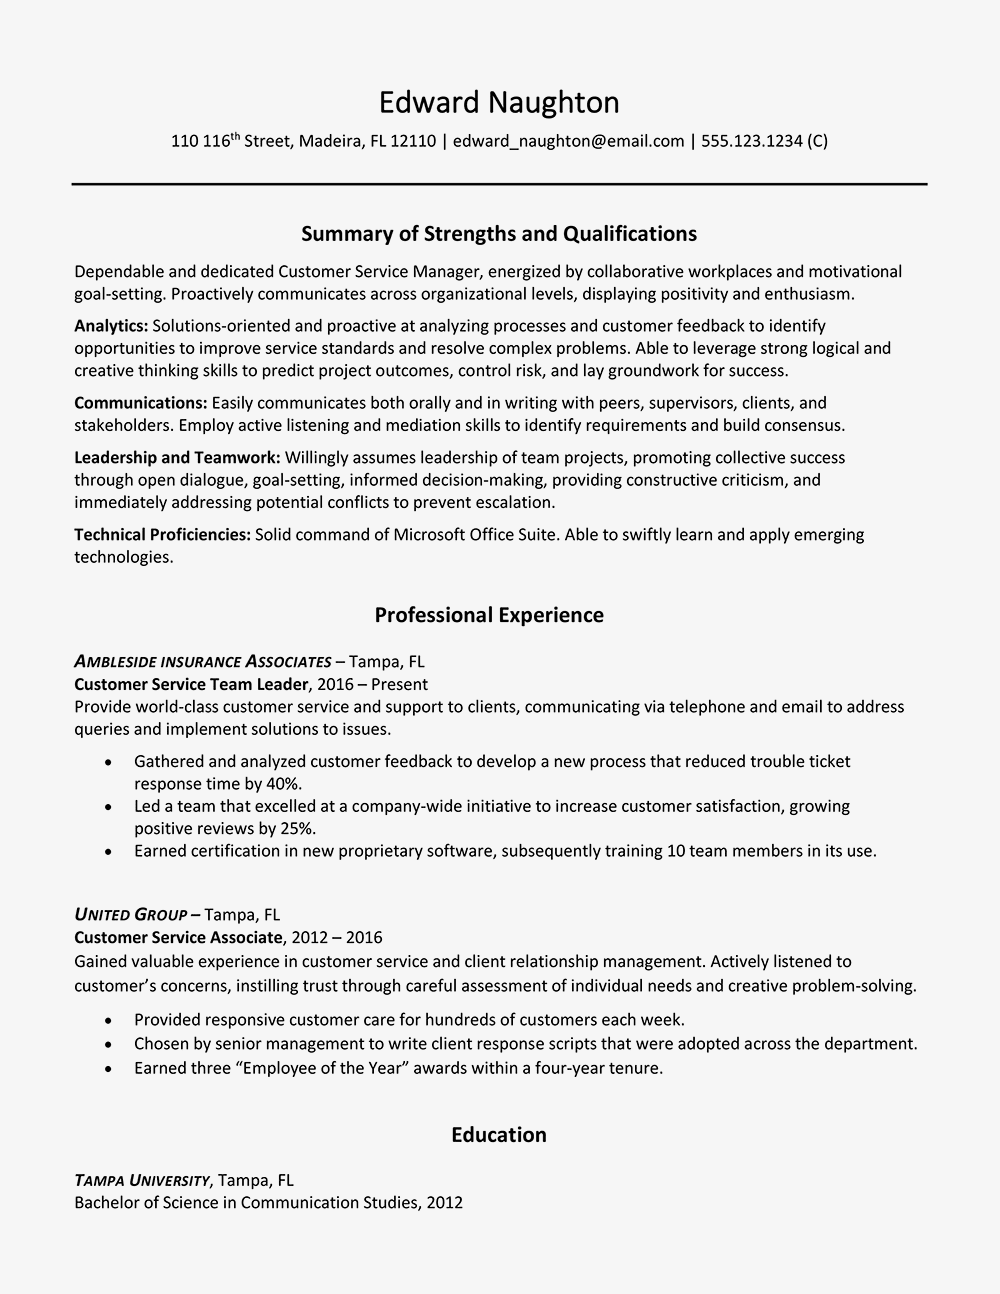 what is the meaning of key skills in resume